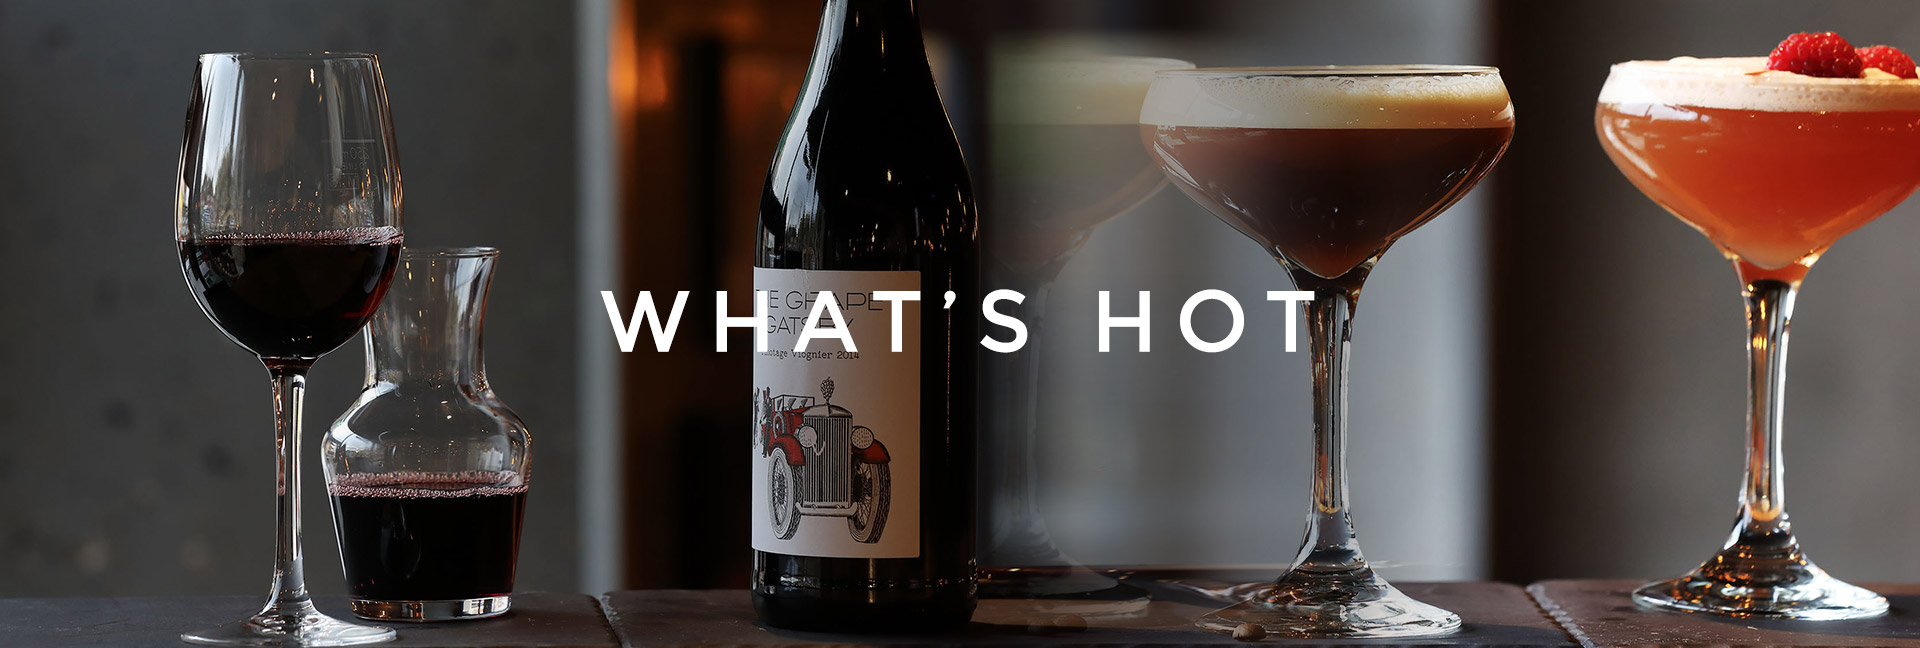 What's Hot at All Bar One Manchester